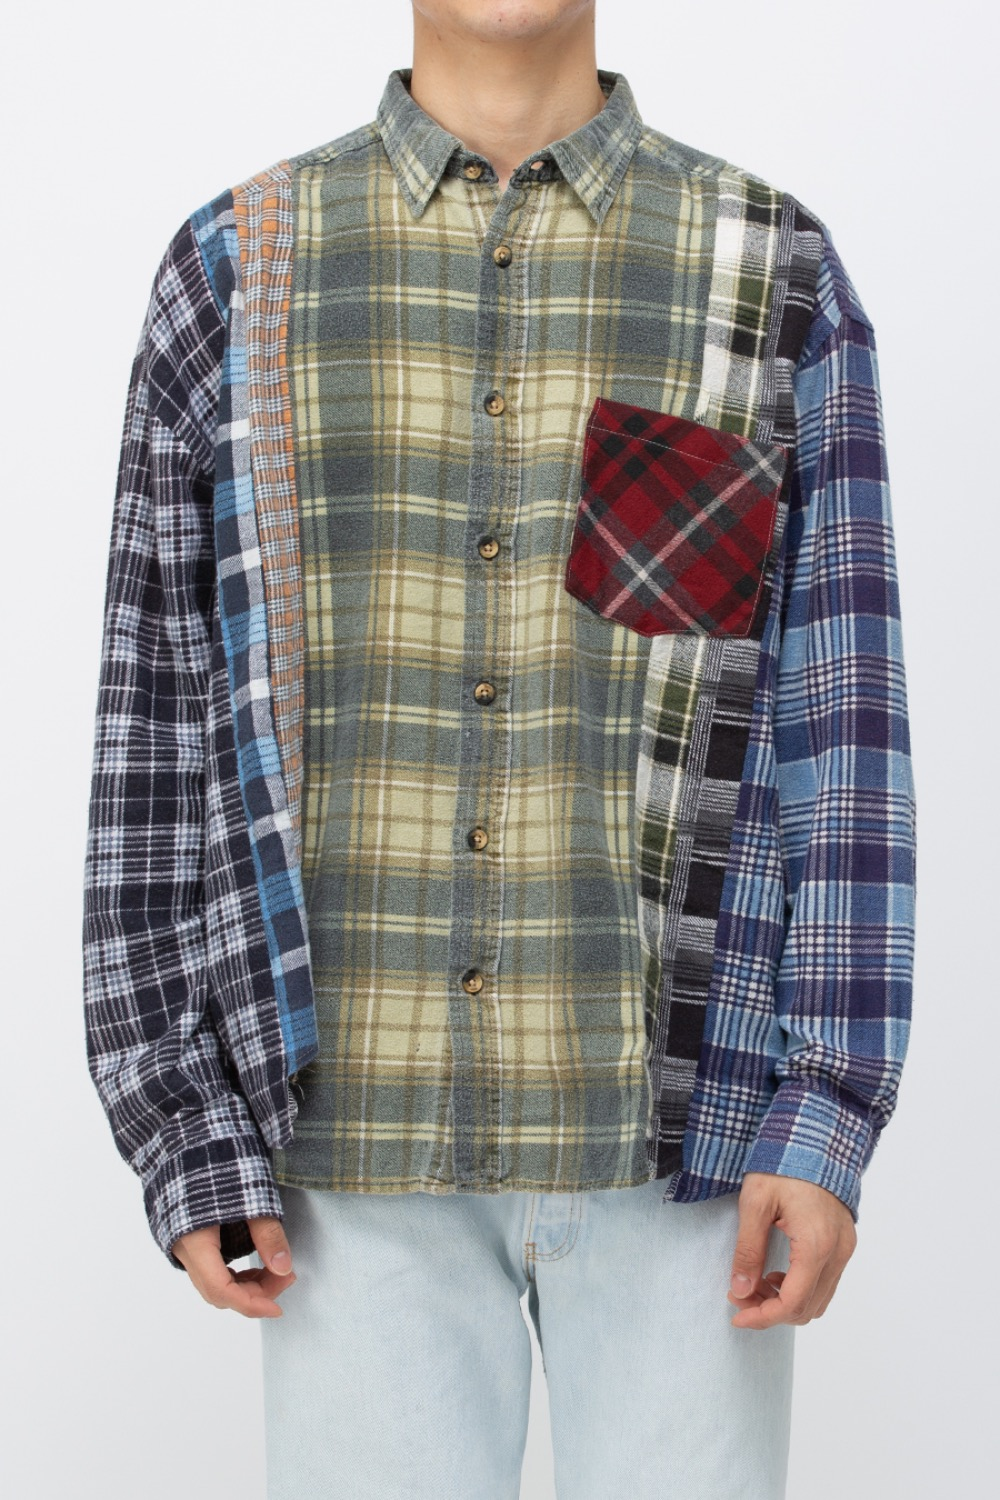 (WIDE-1)REBUILD BY NEEDLES FLANNEL SHIRT - 7CUTS WIDE SHIRT